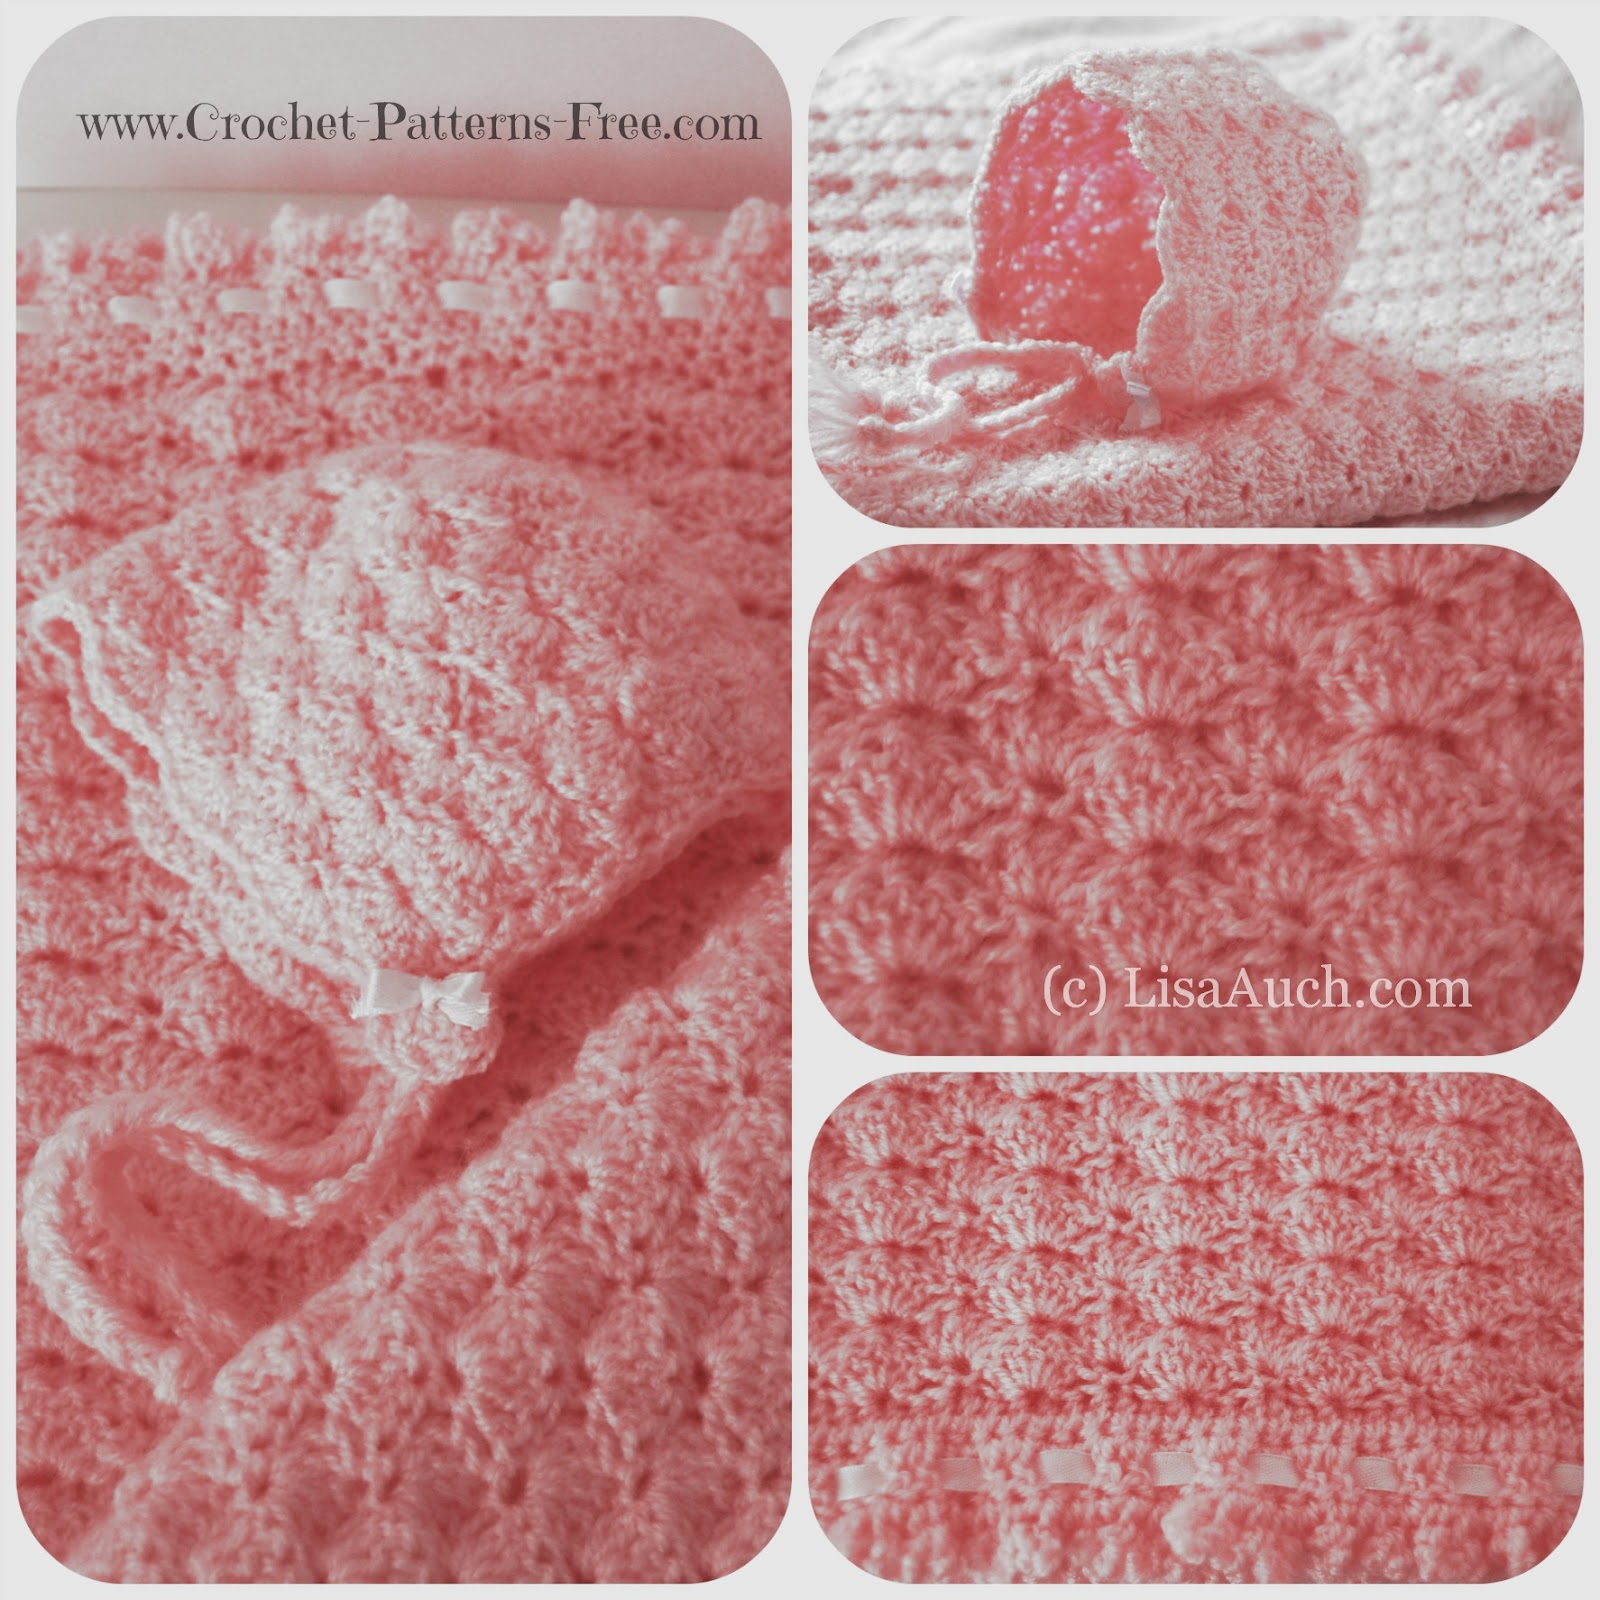 Free Crochet Patterns and Designs by LisaAuch: Free Crochet Baby ...